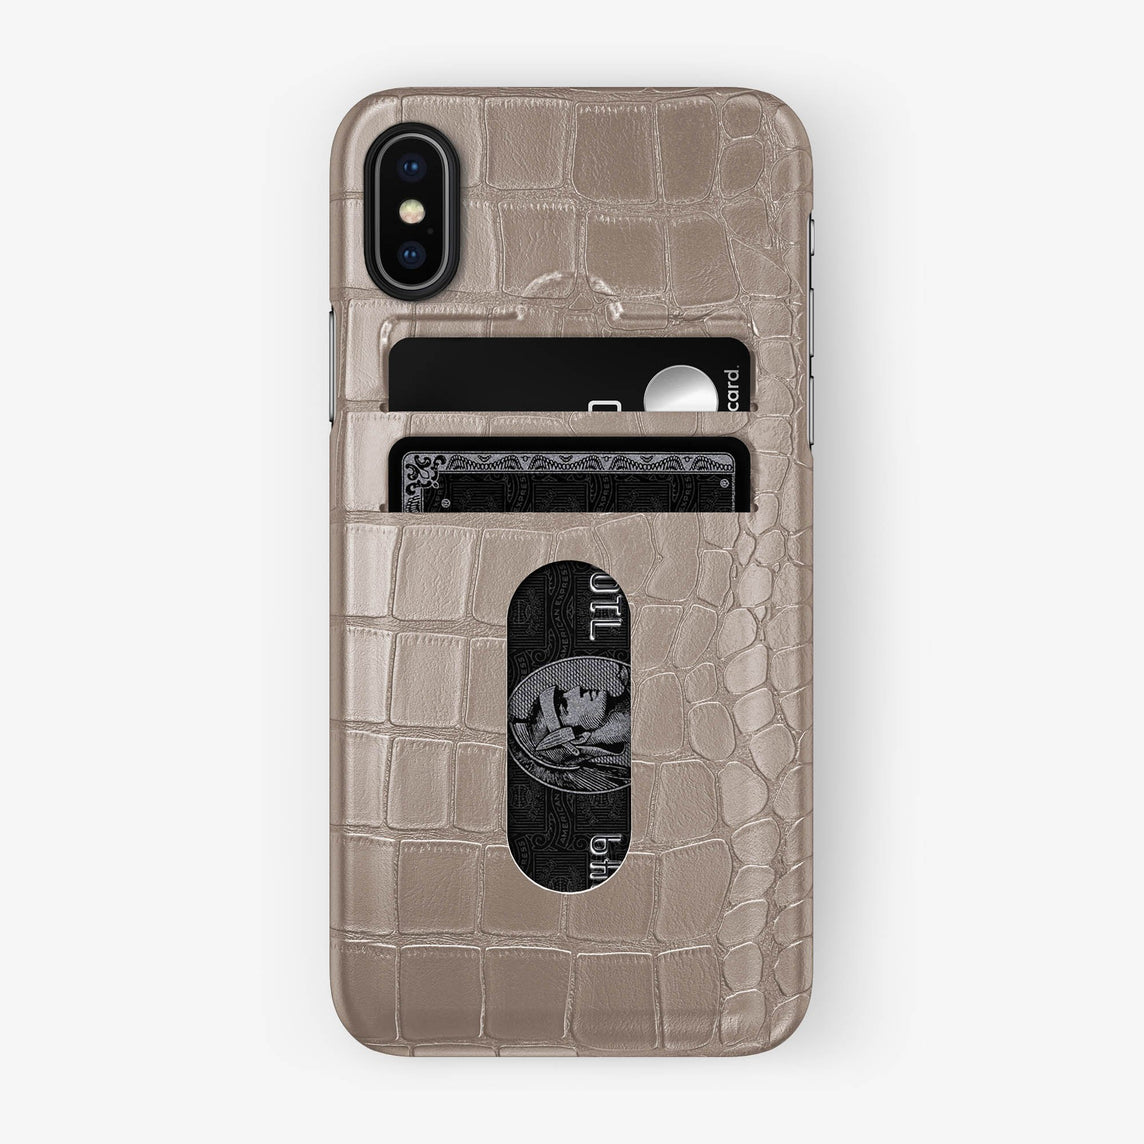 Alligator Card Holder Case iPhone X/Xs | Latte - Black with-personalization